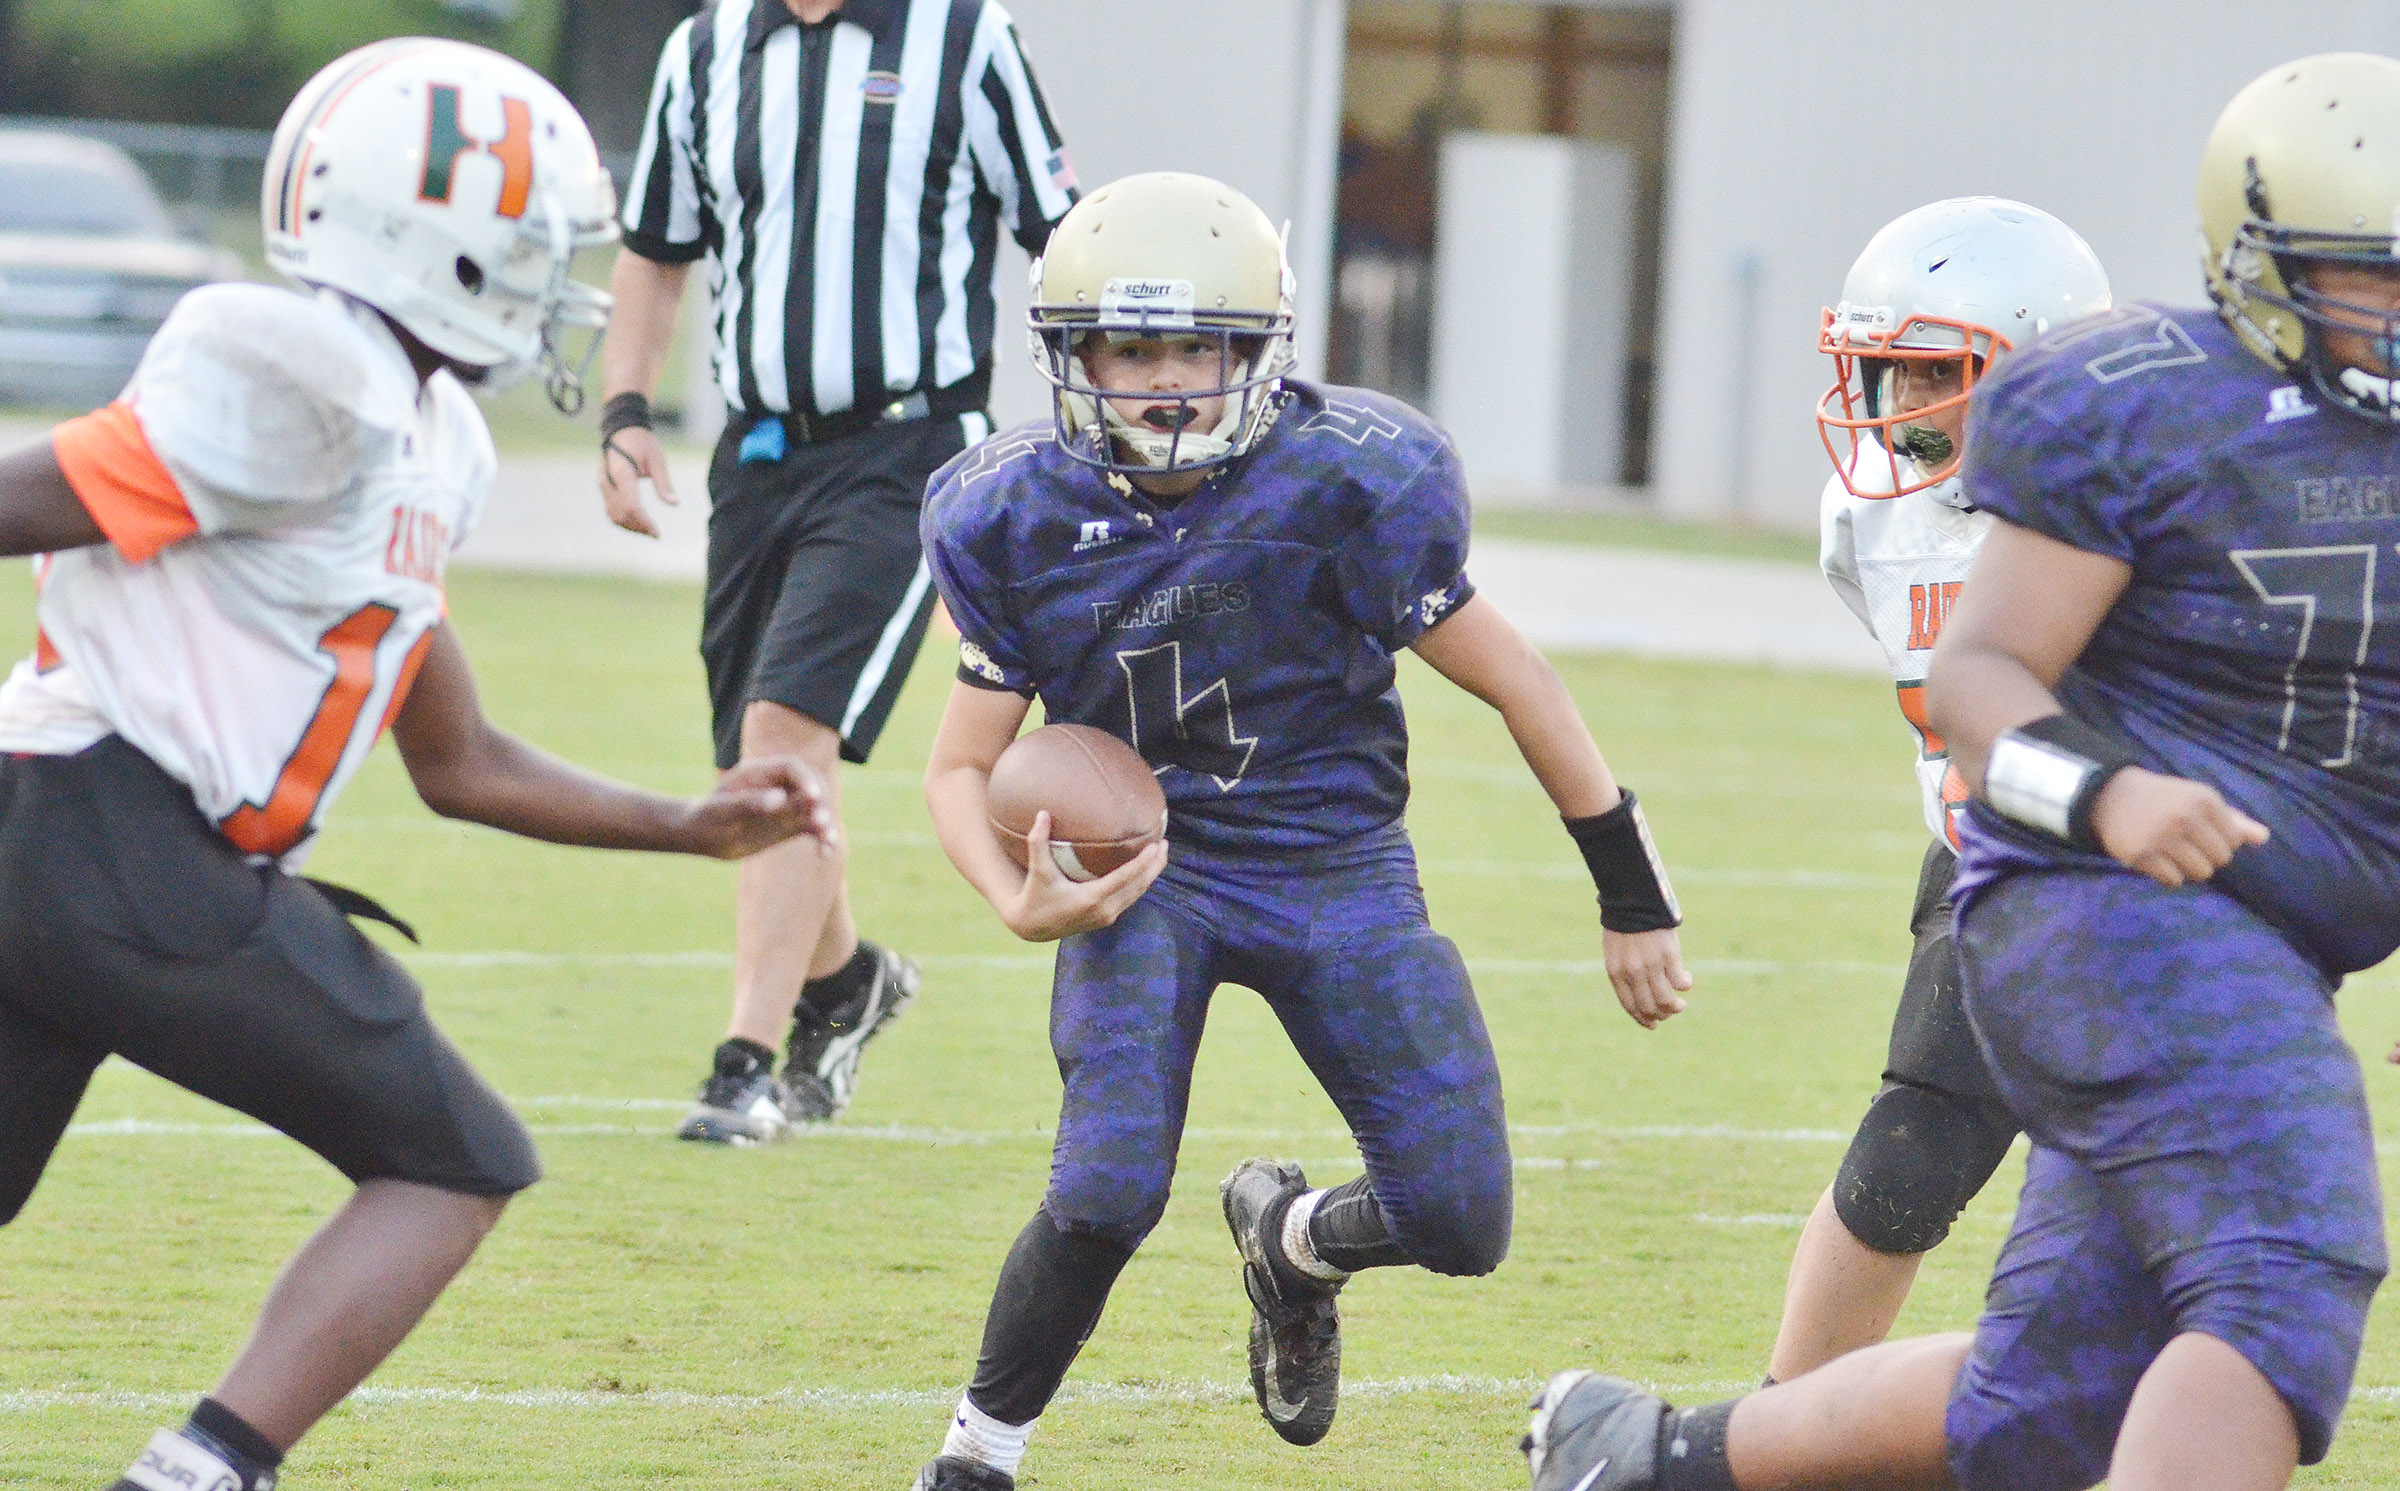 CMS seventh-grader Konner Forbis runs the ball.